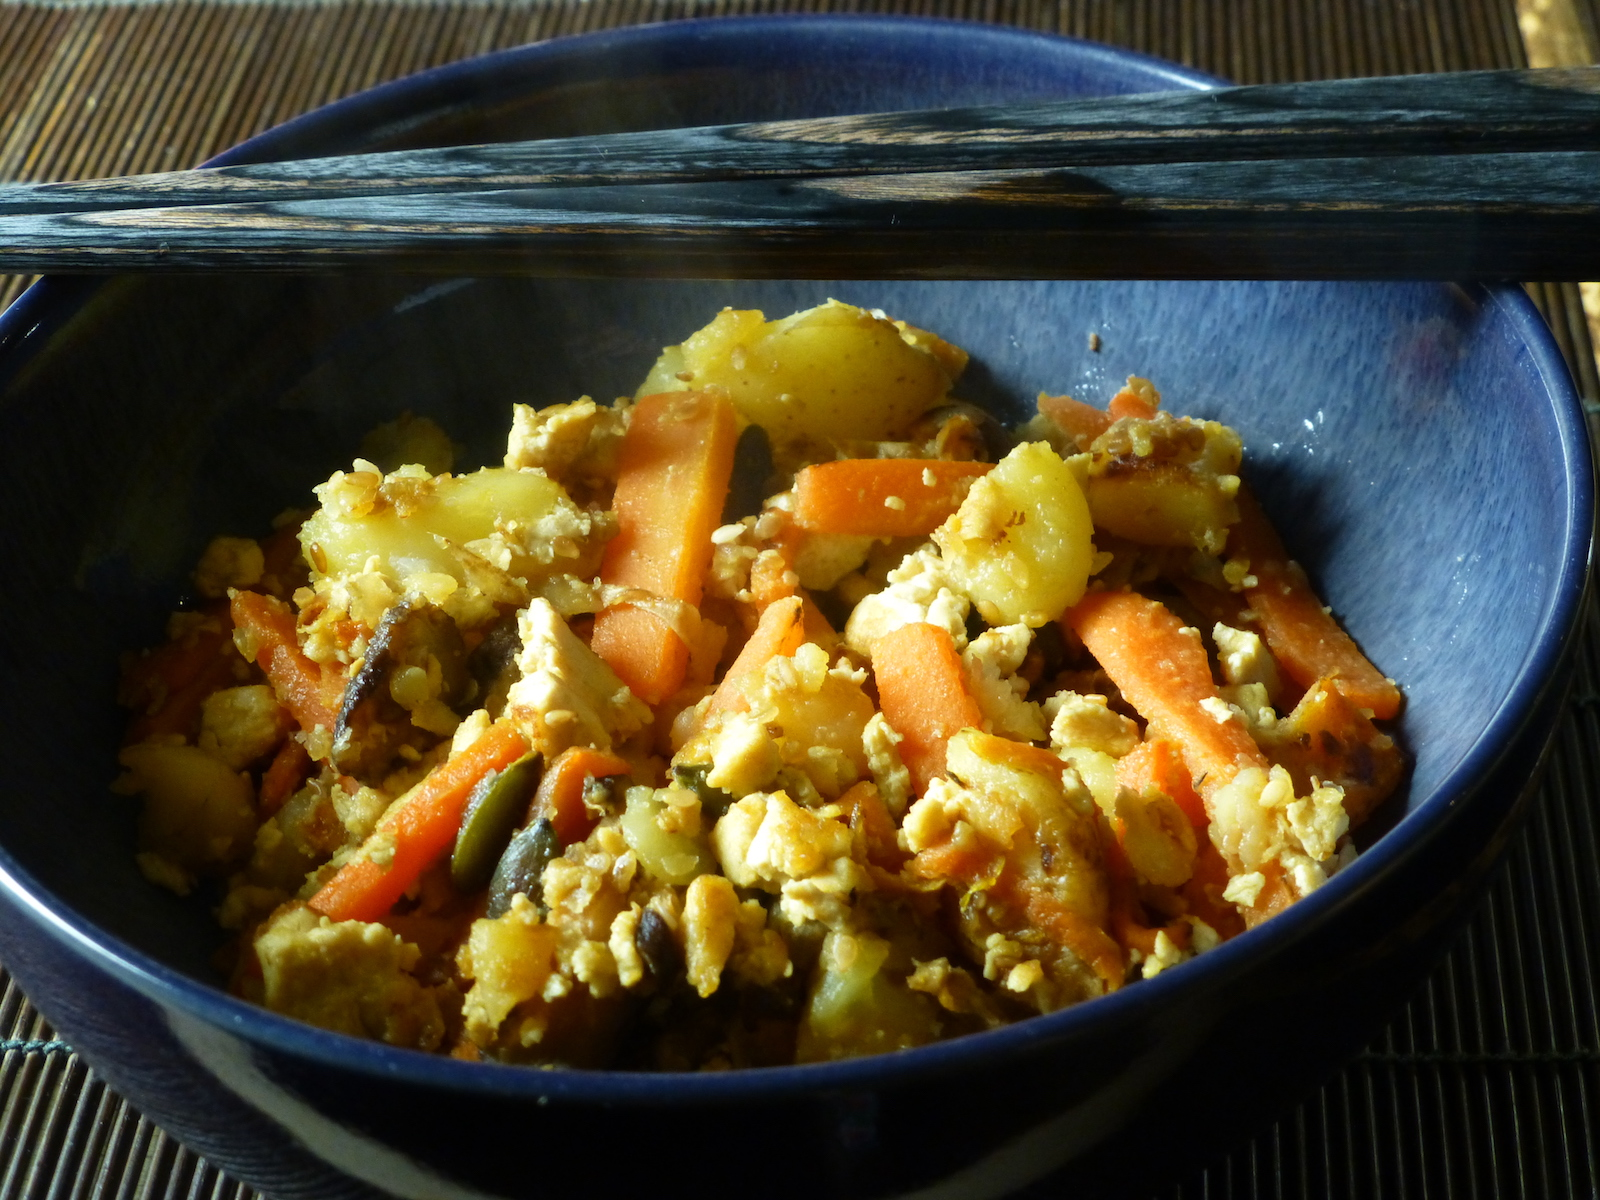 Stir-fry of tofu, potatoes and carrots